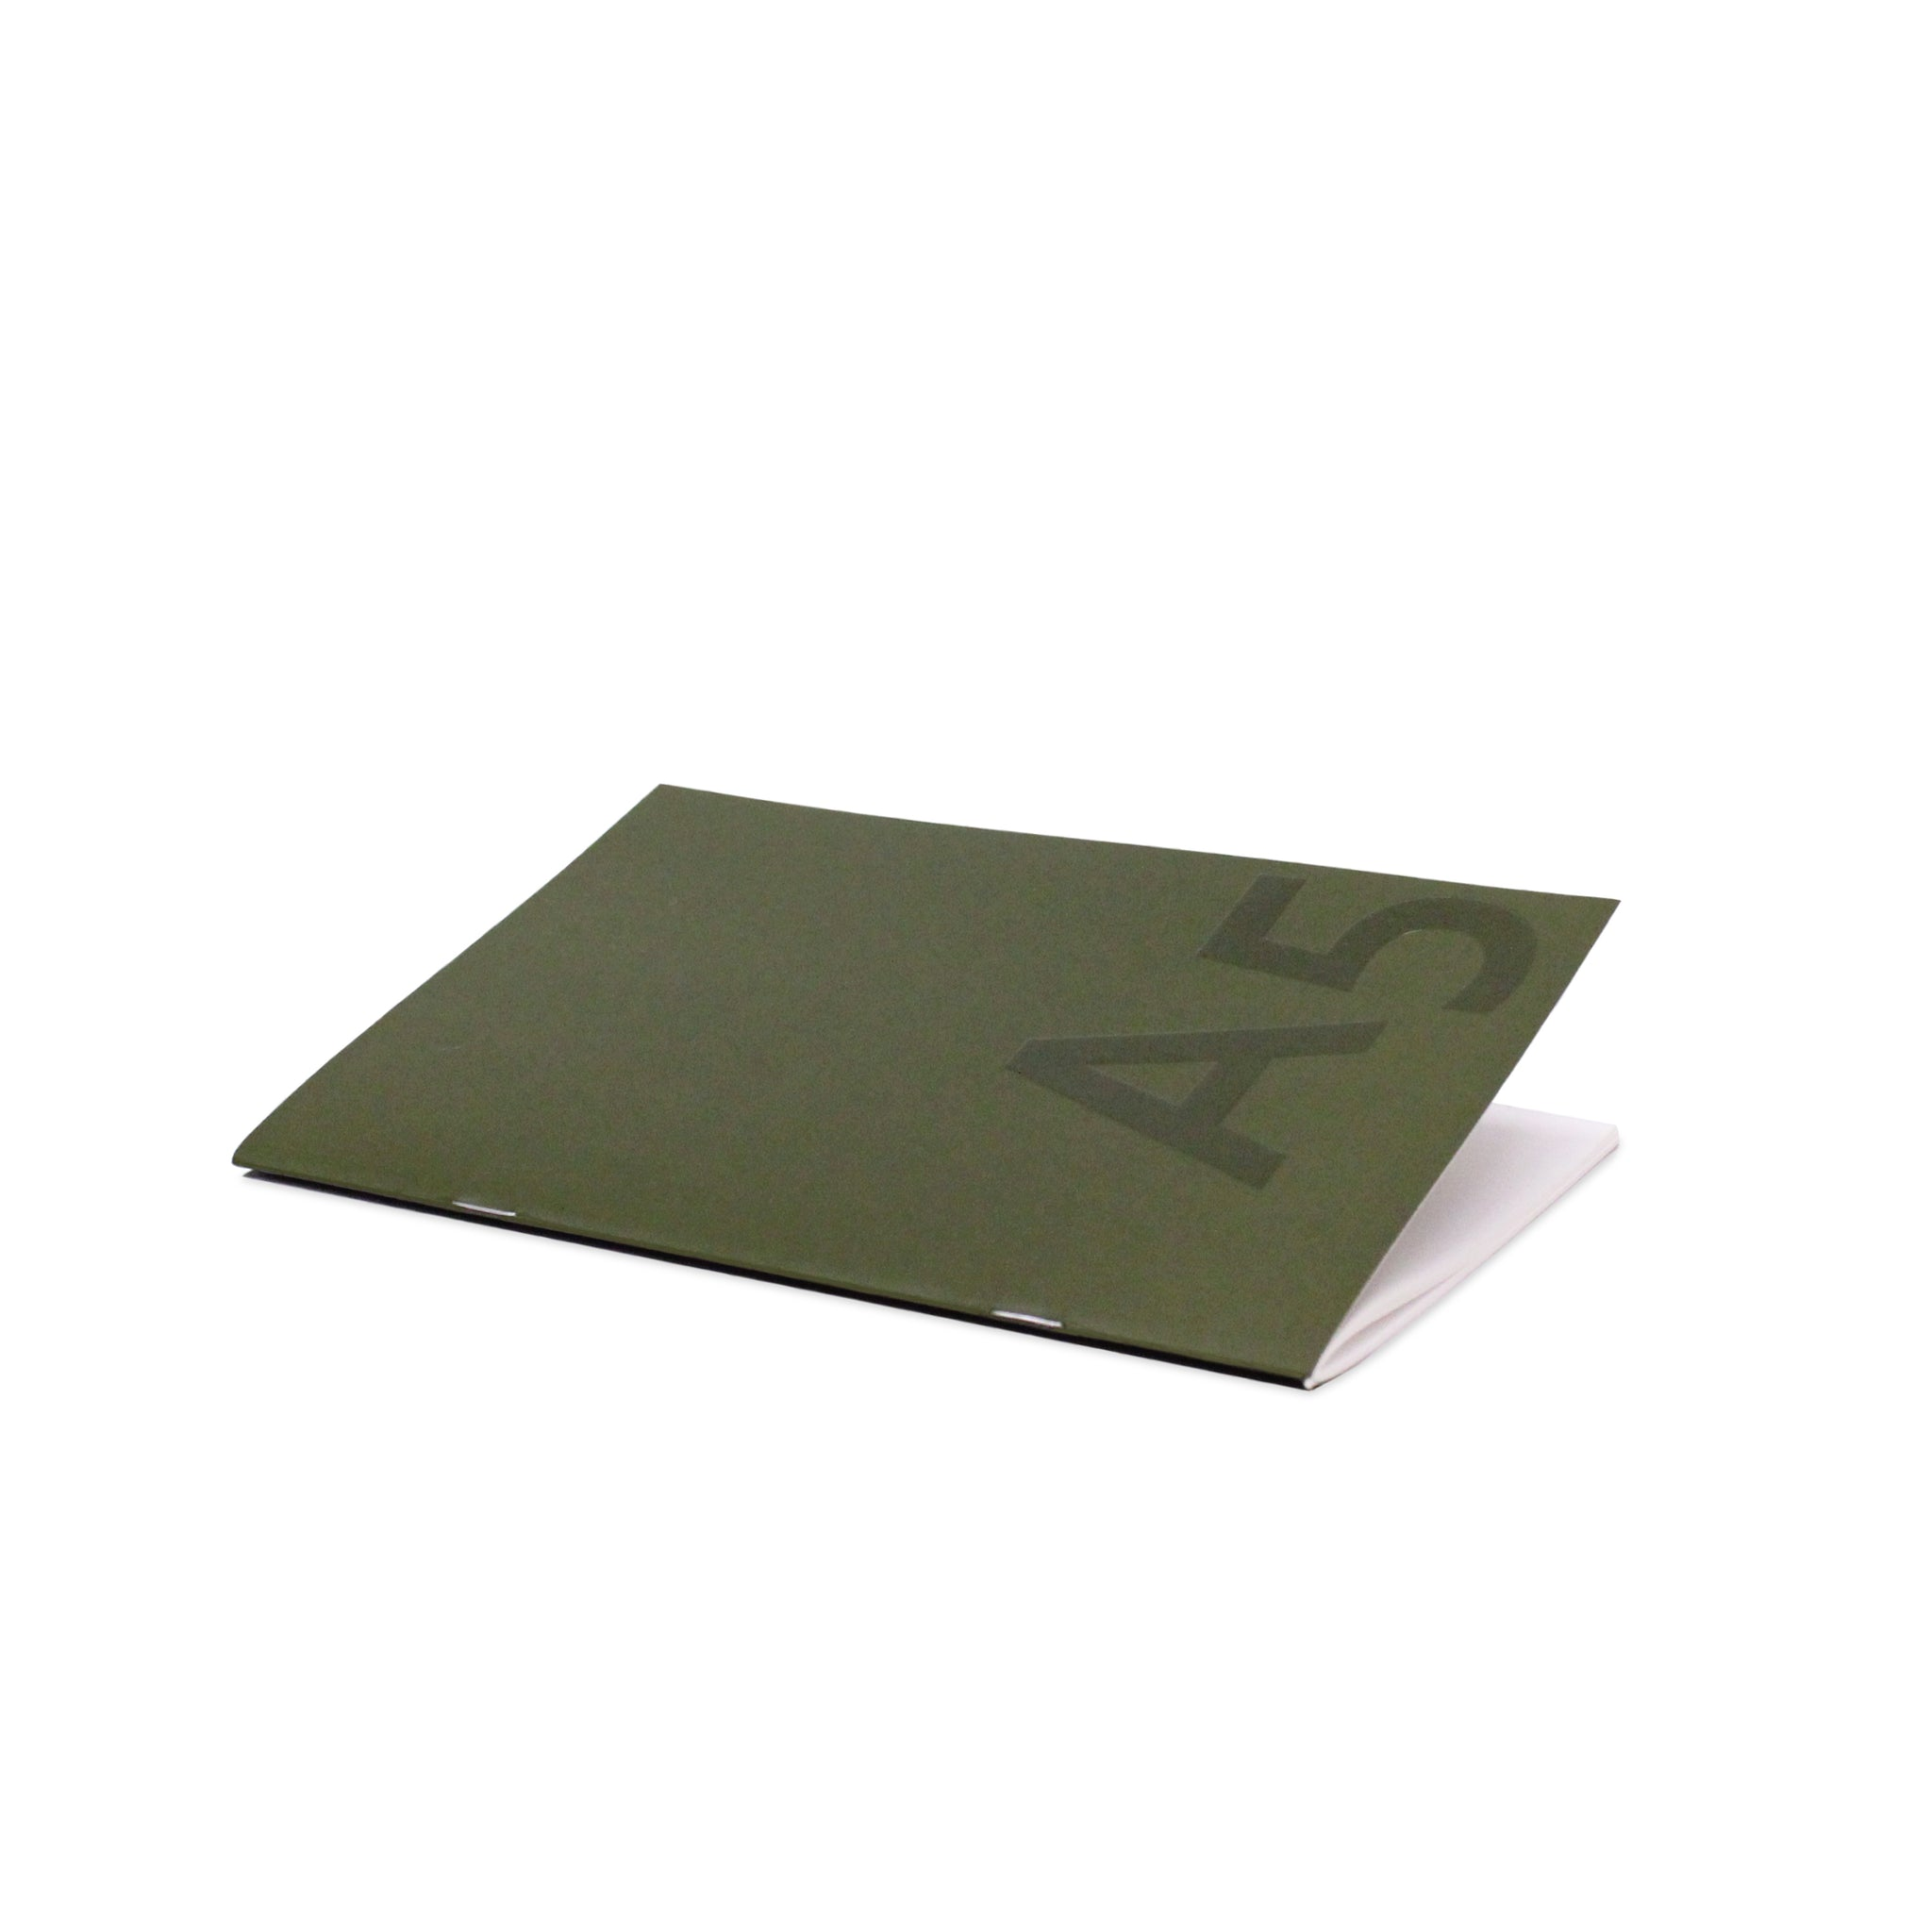 ALT Water resistant Notebook A5 - Olive